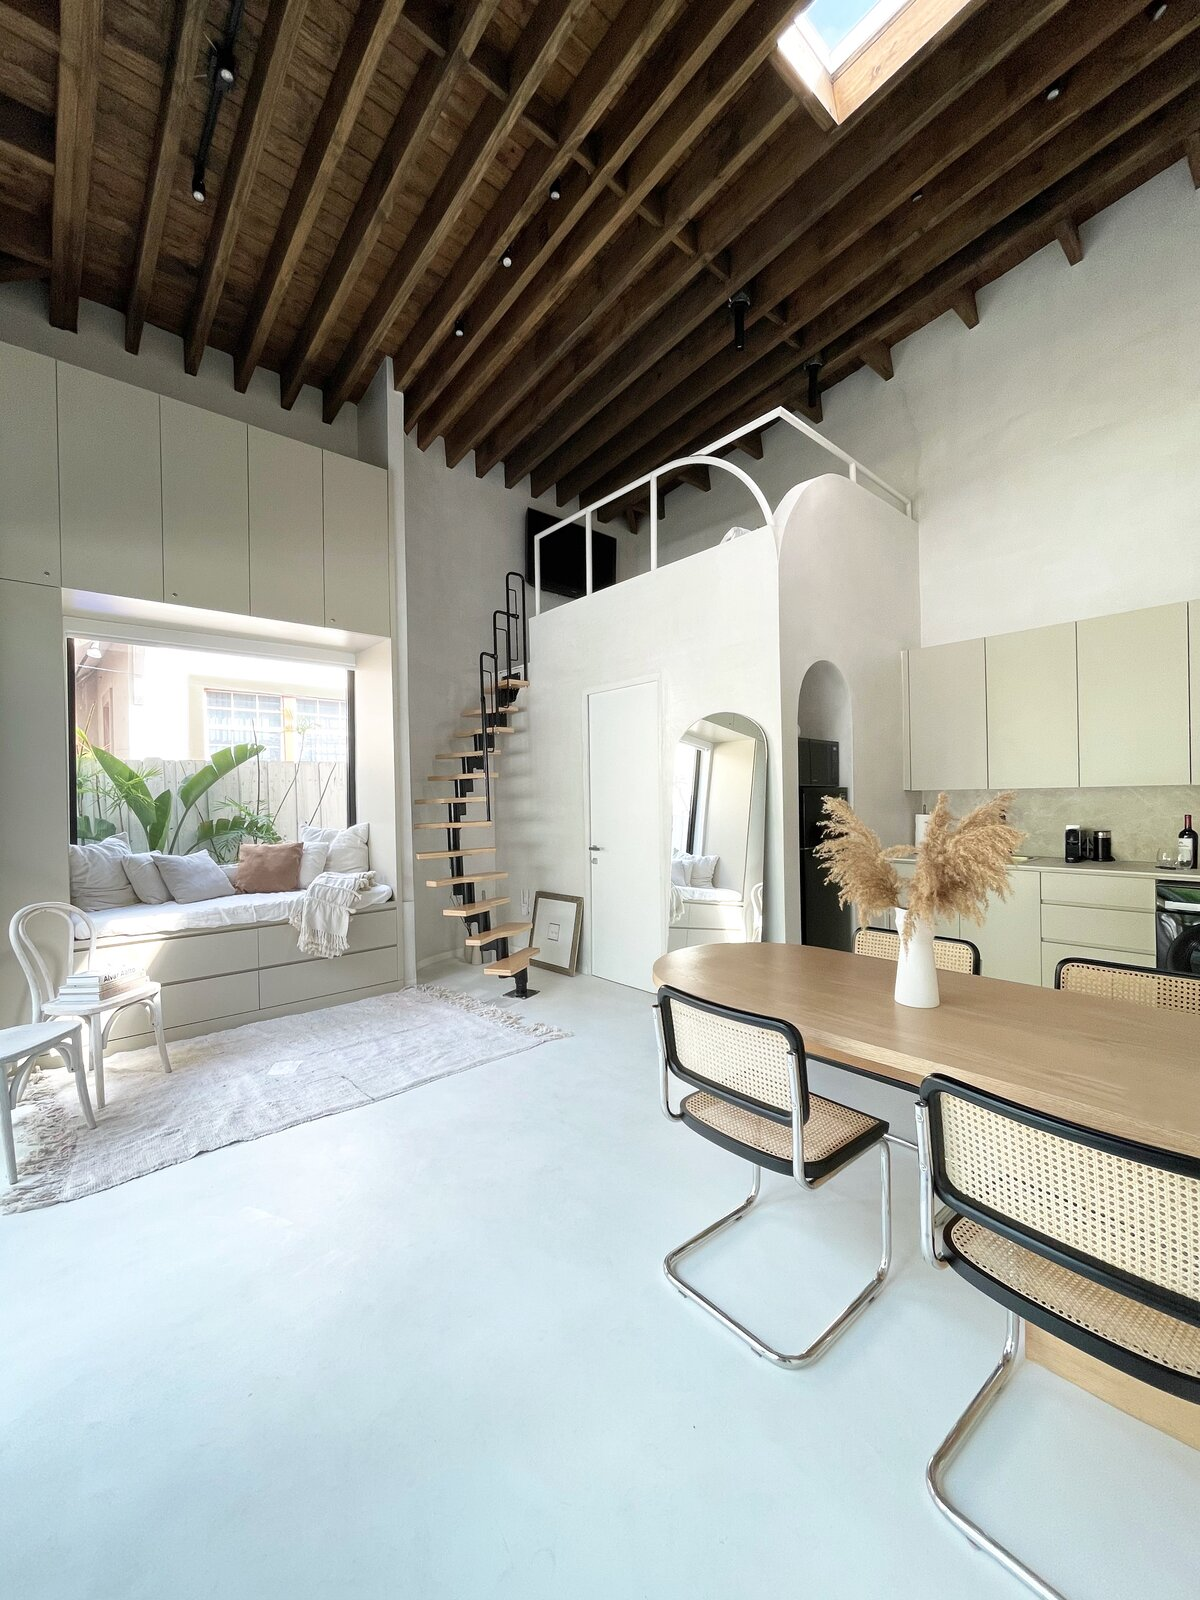 Large windows, doors, and a skylight flood the guesthouse and studio with plenty of sunlight.